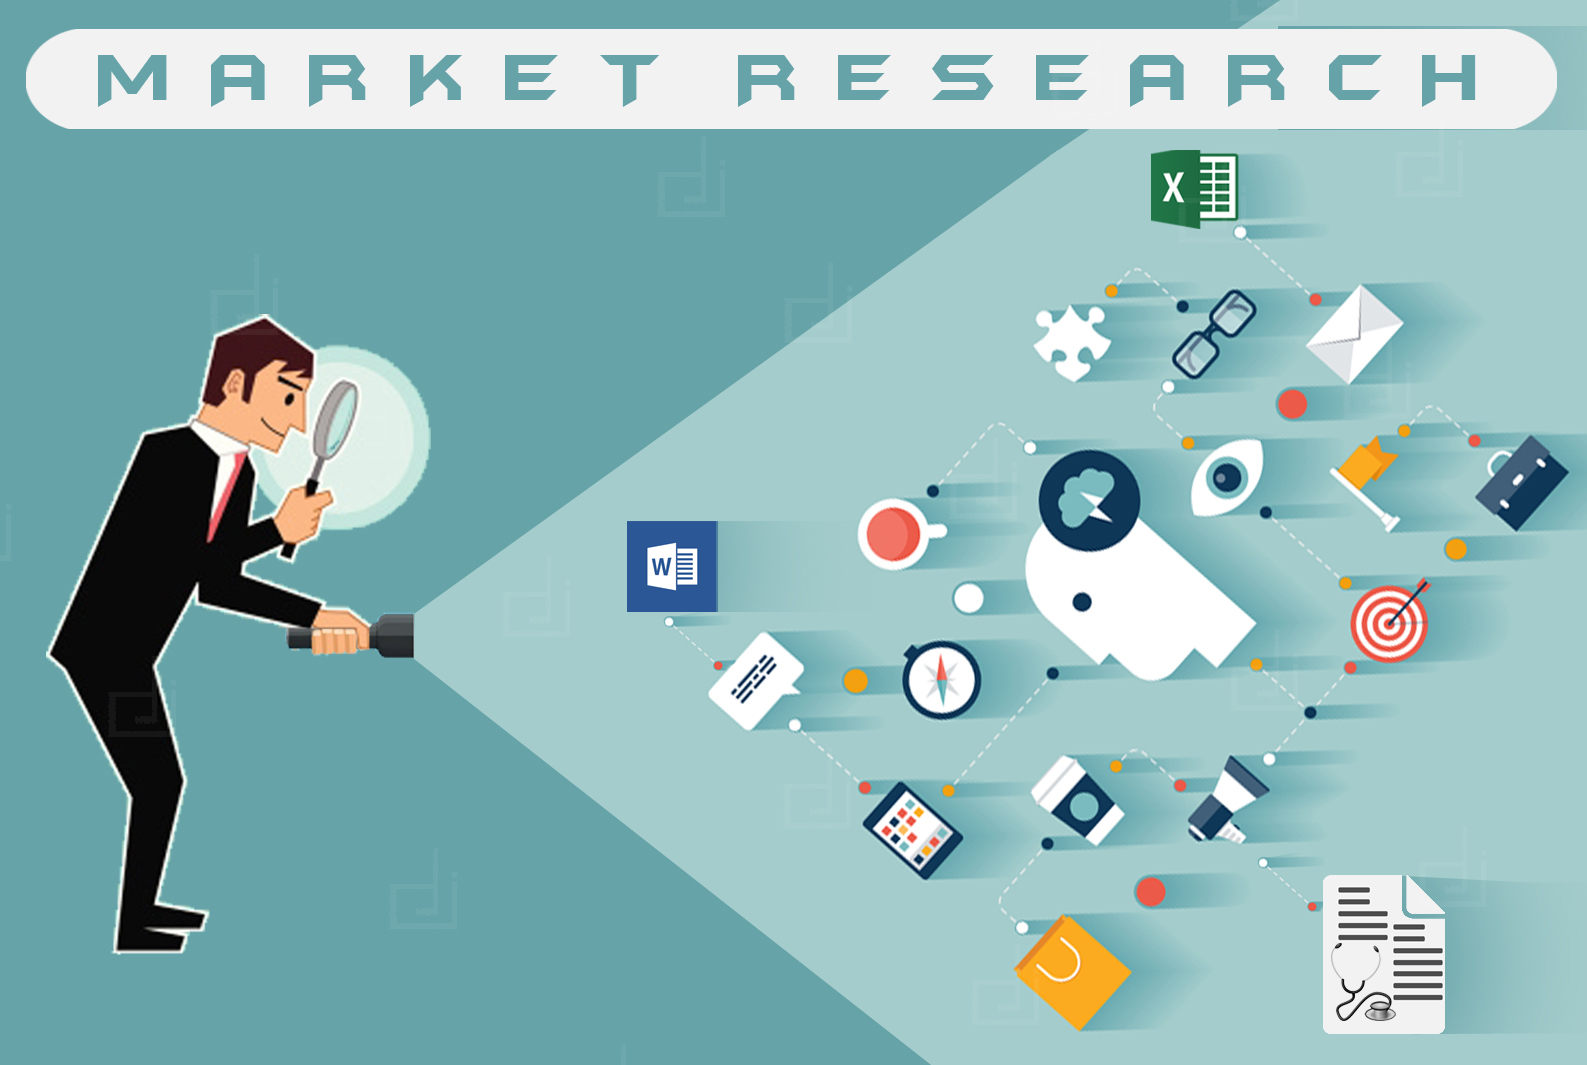 Cocktail Market Have High Growth But May Foresee Even Higher Value 2020-2026 photo